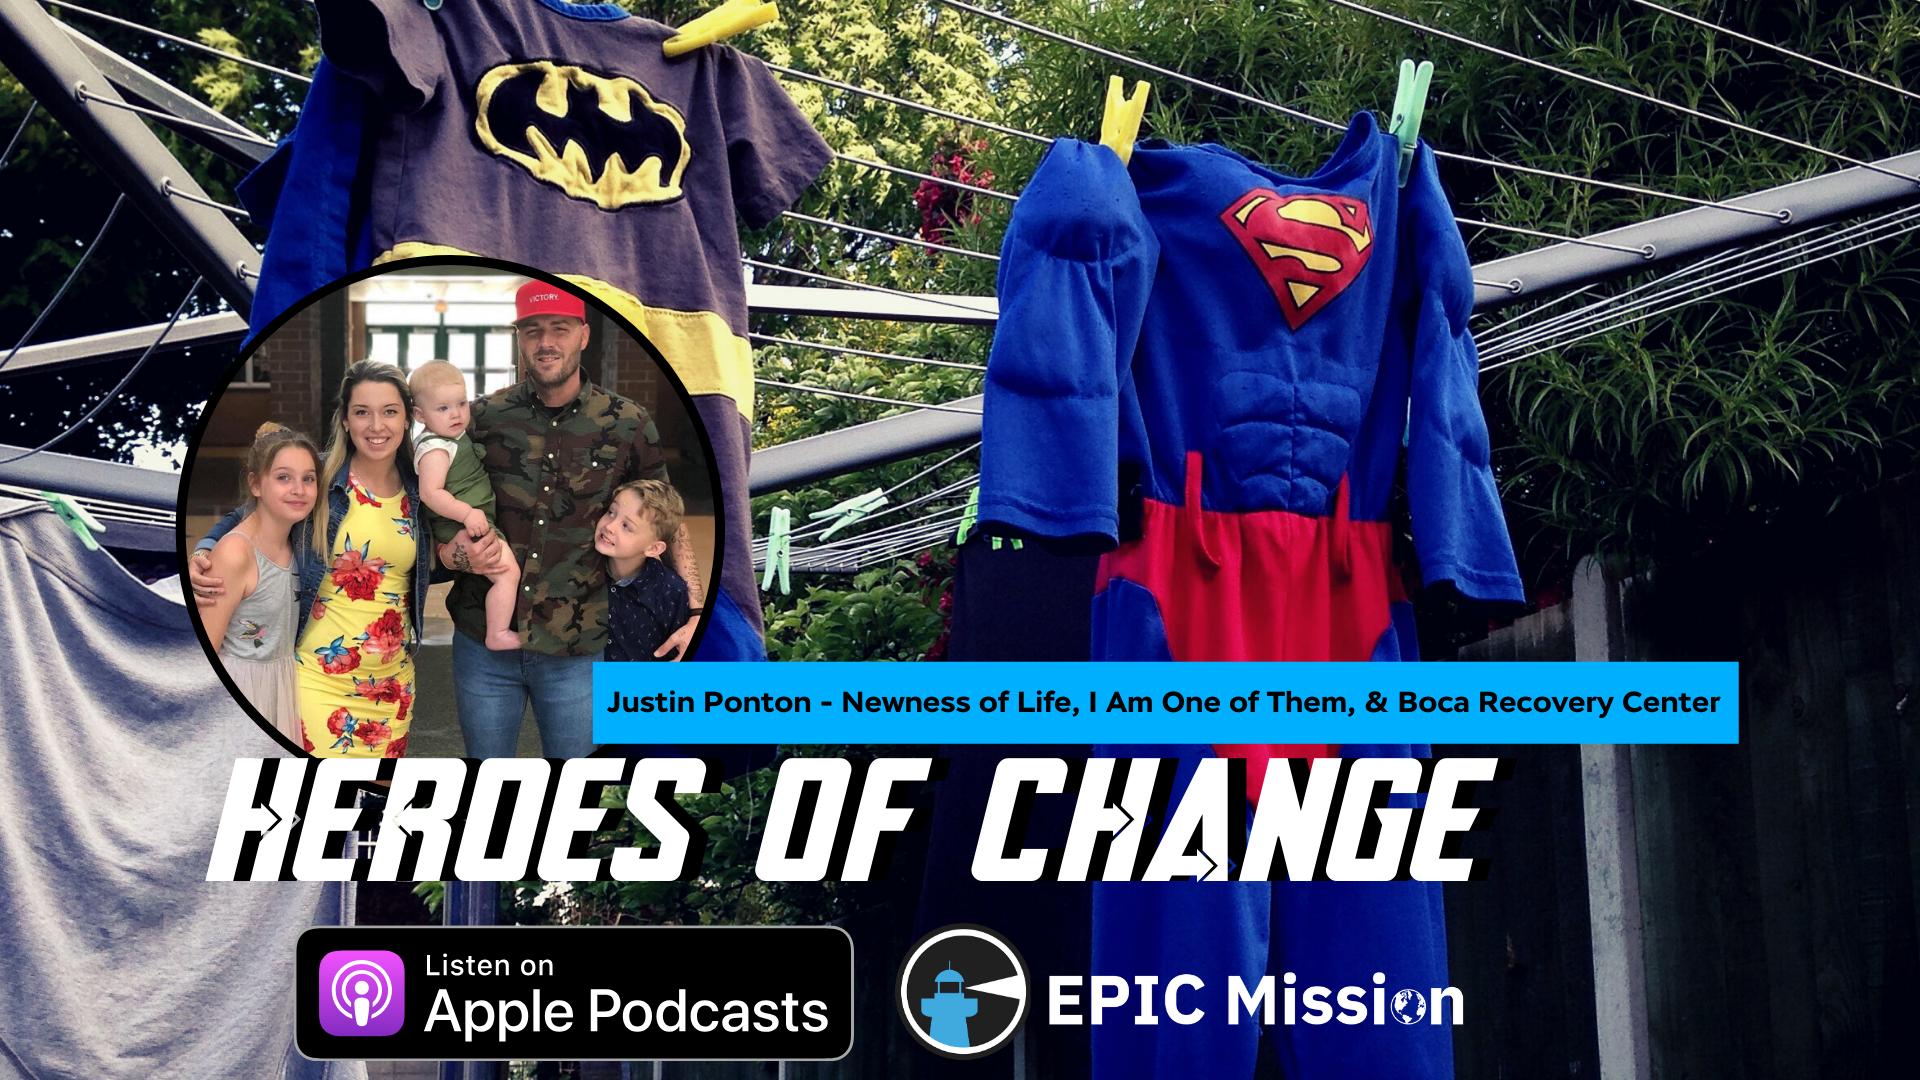 Heroes of Change: Justin Ponton of Newness Of Life & I Am One of Them